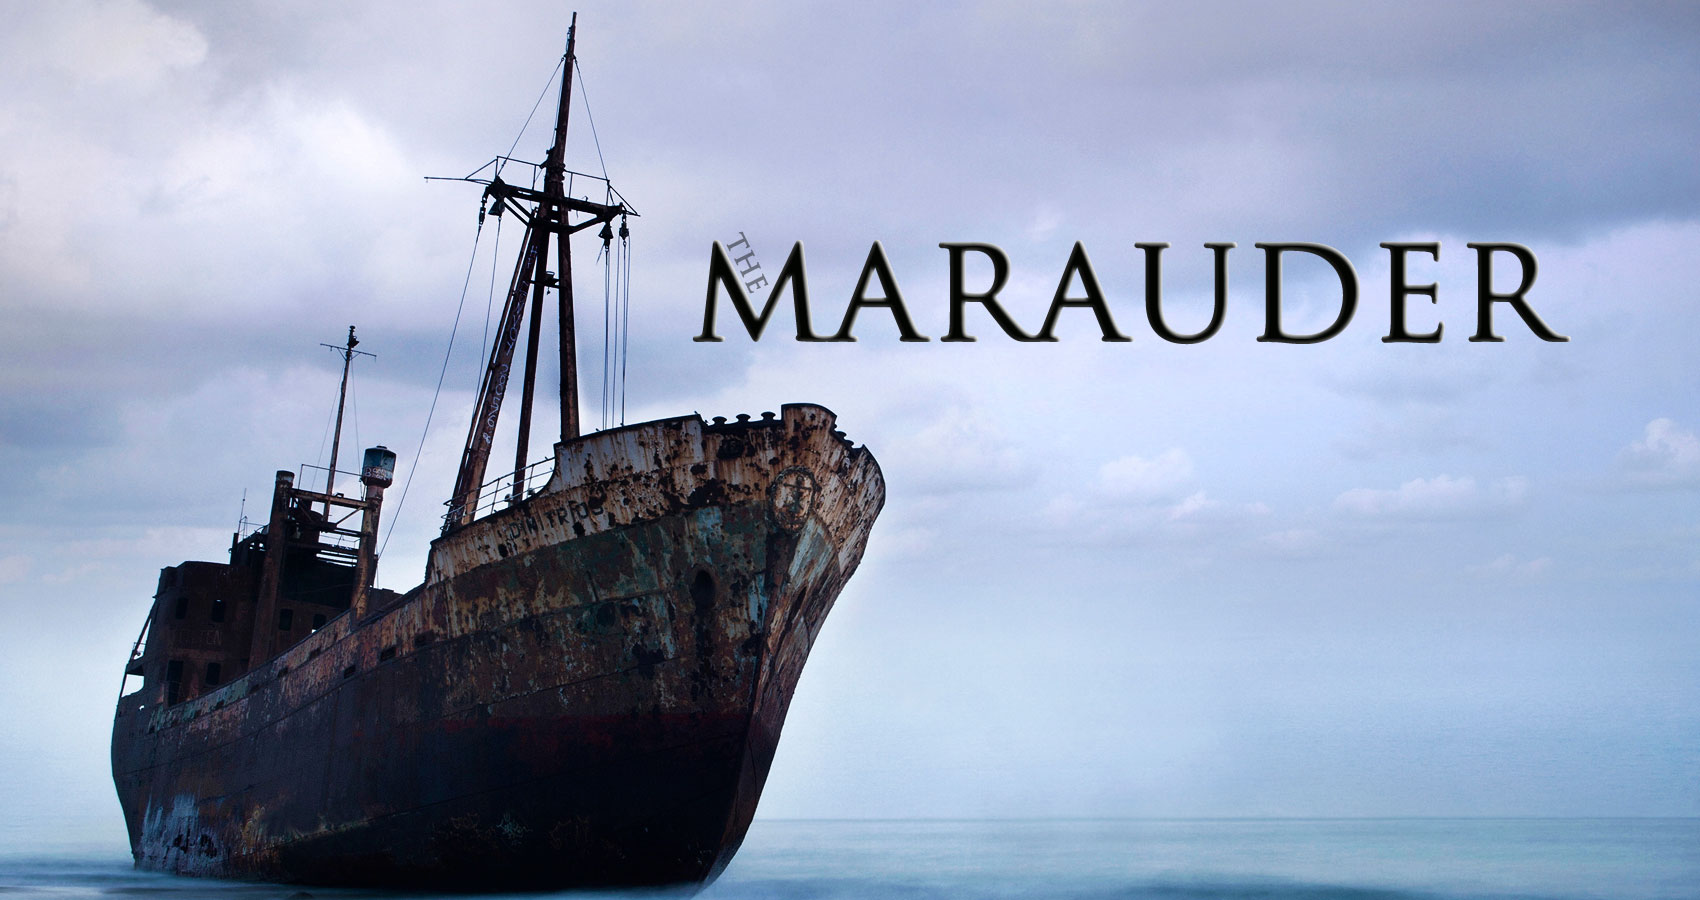 The Marauder by Don Knowles at Spillwords.com